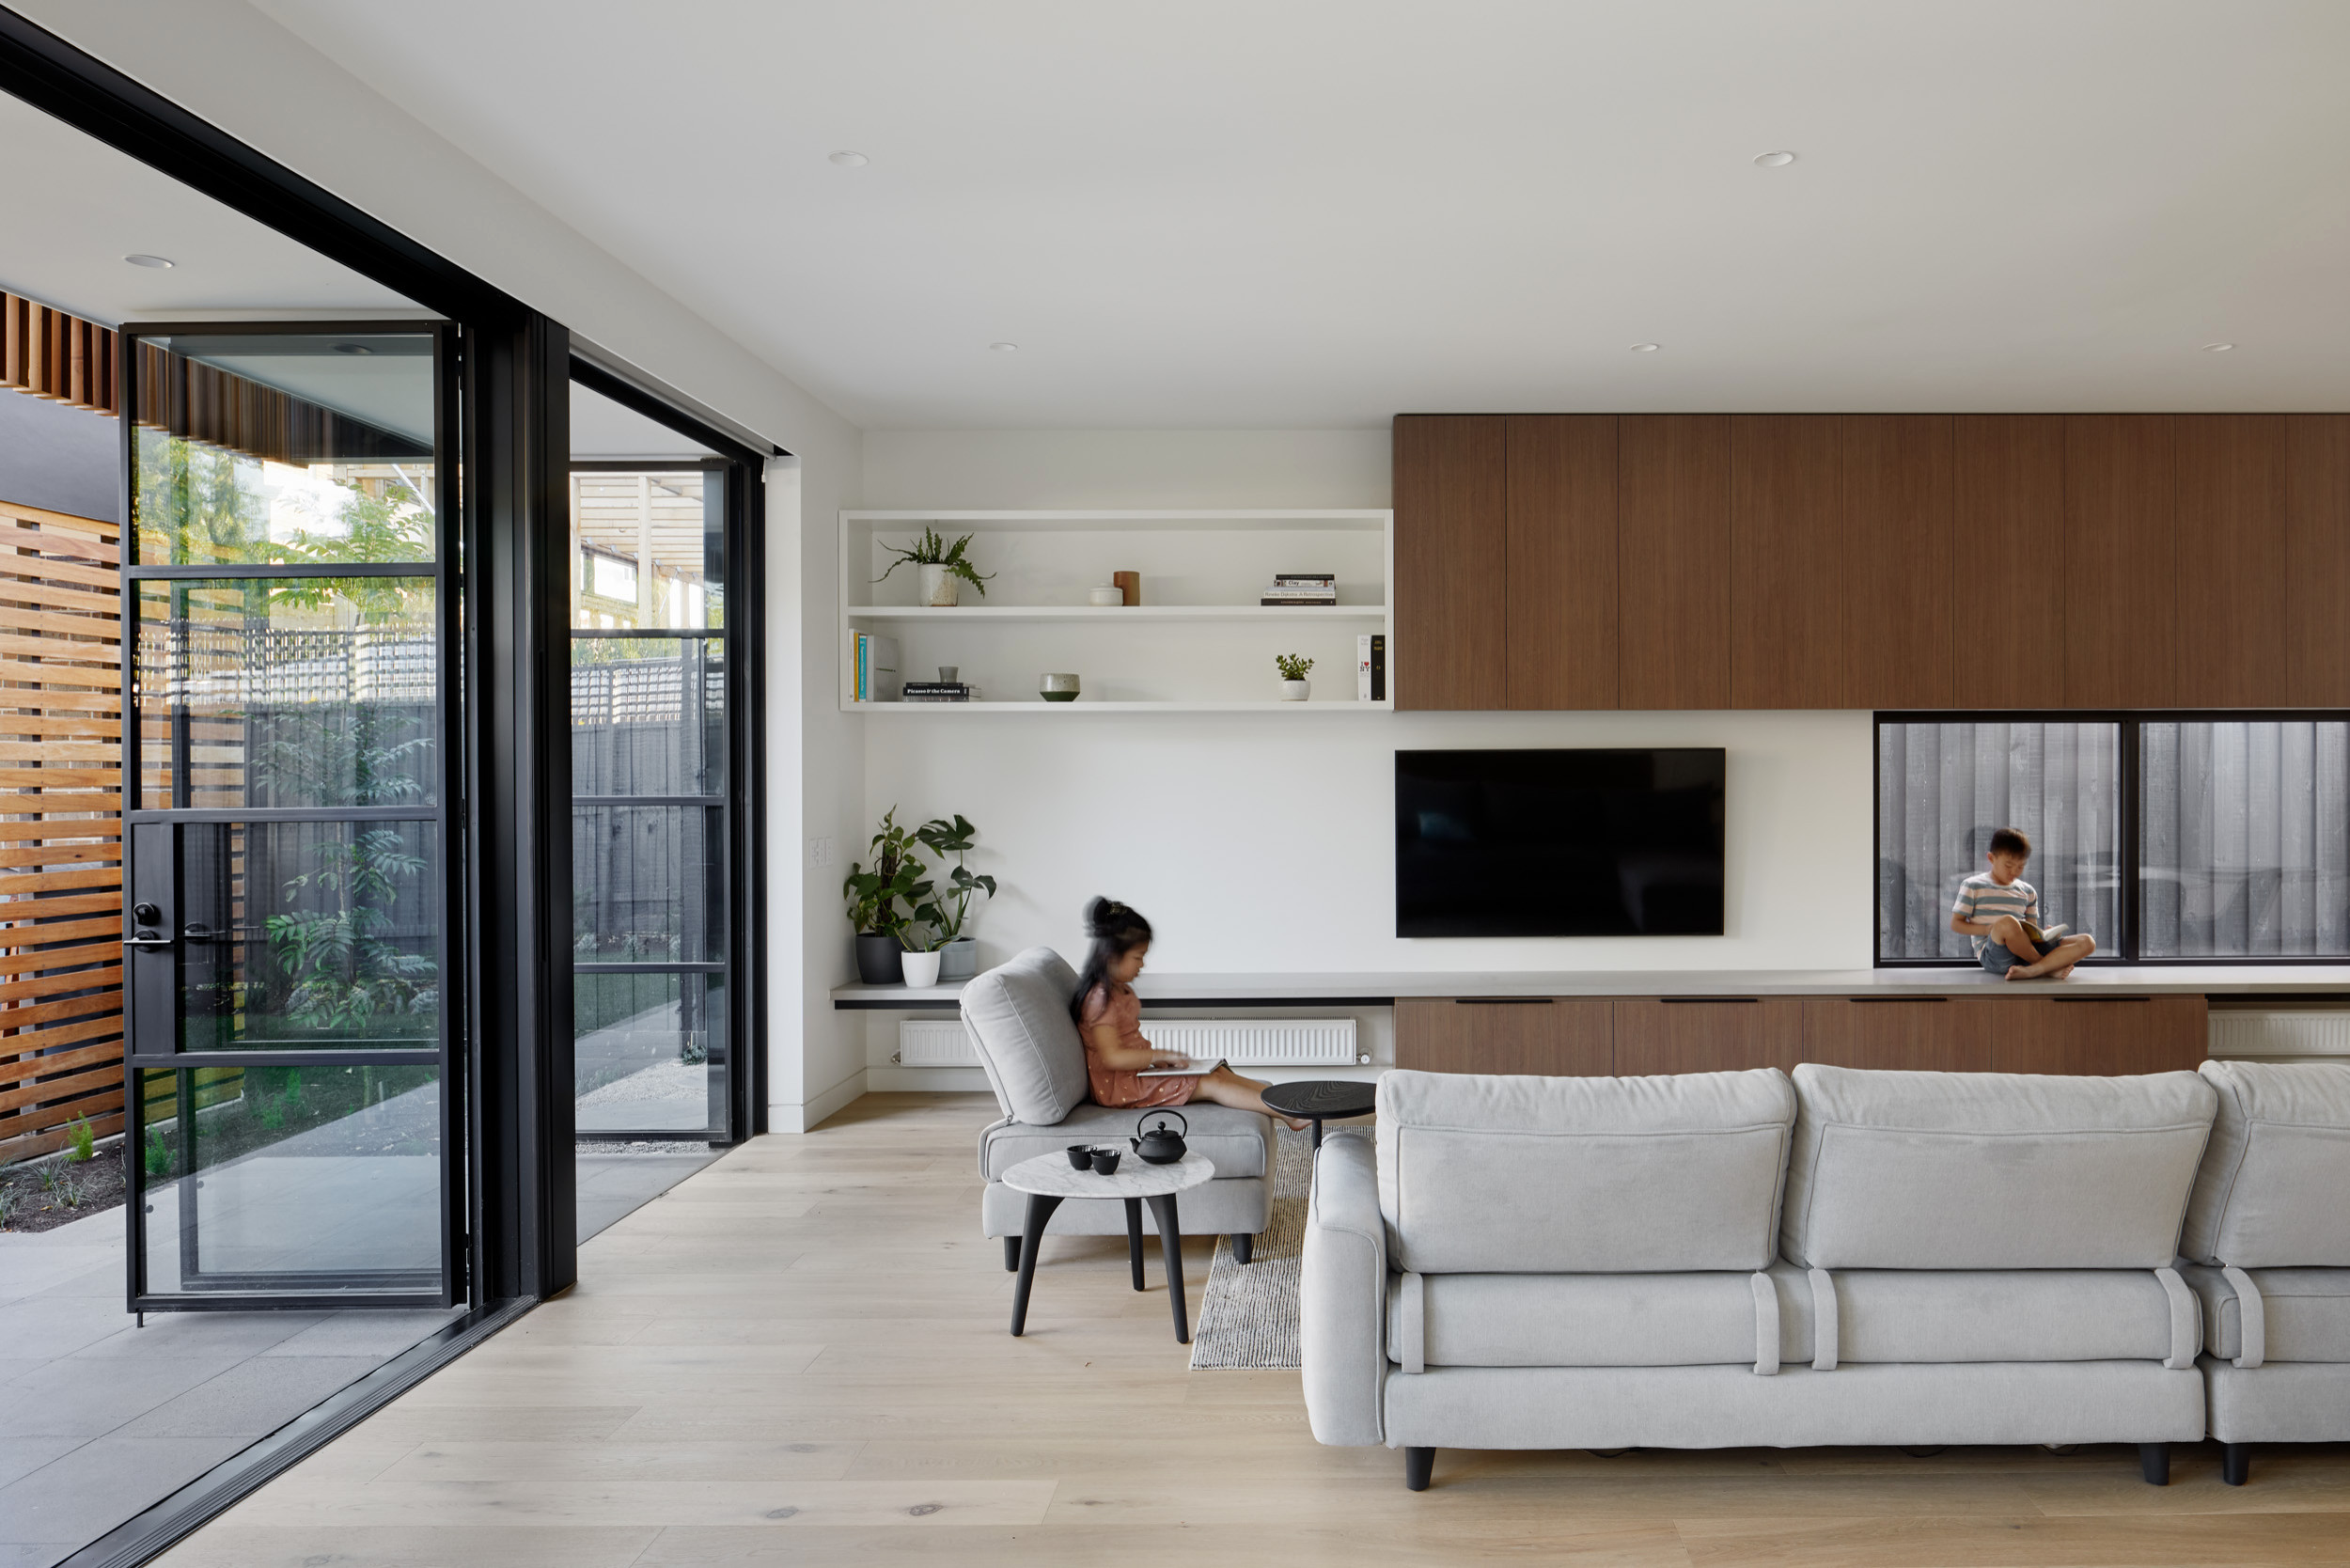 75 Beautiful Modern Living Room Pictures Ideas December 2020 Houzz